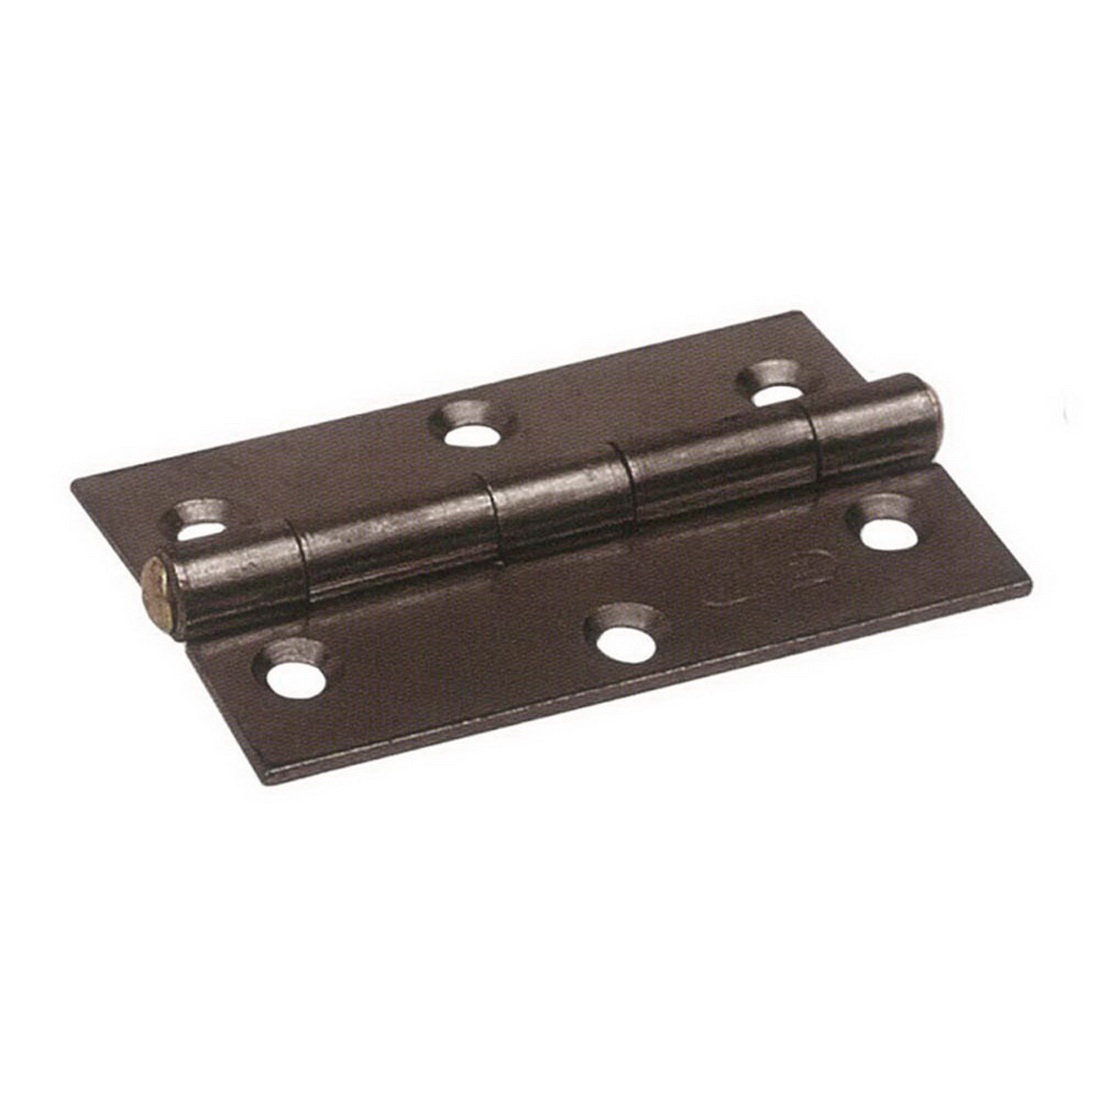 75 x 100mm Fixed Pin Narrow Butt Hinge Florentine Bronze